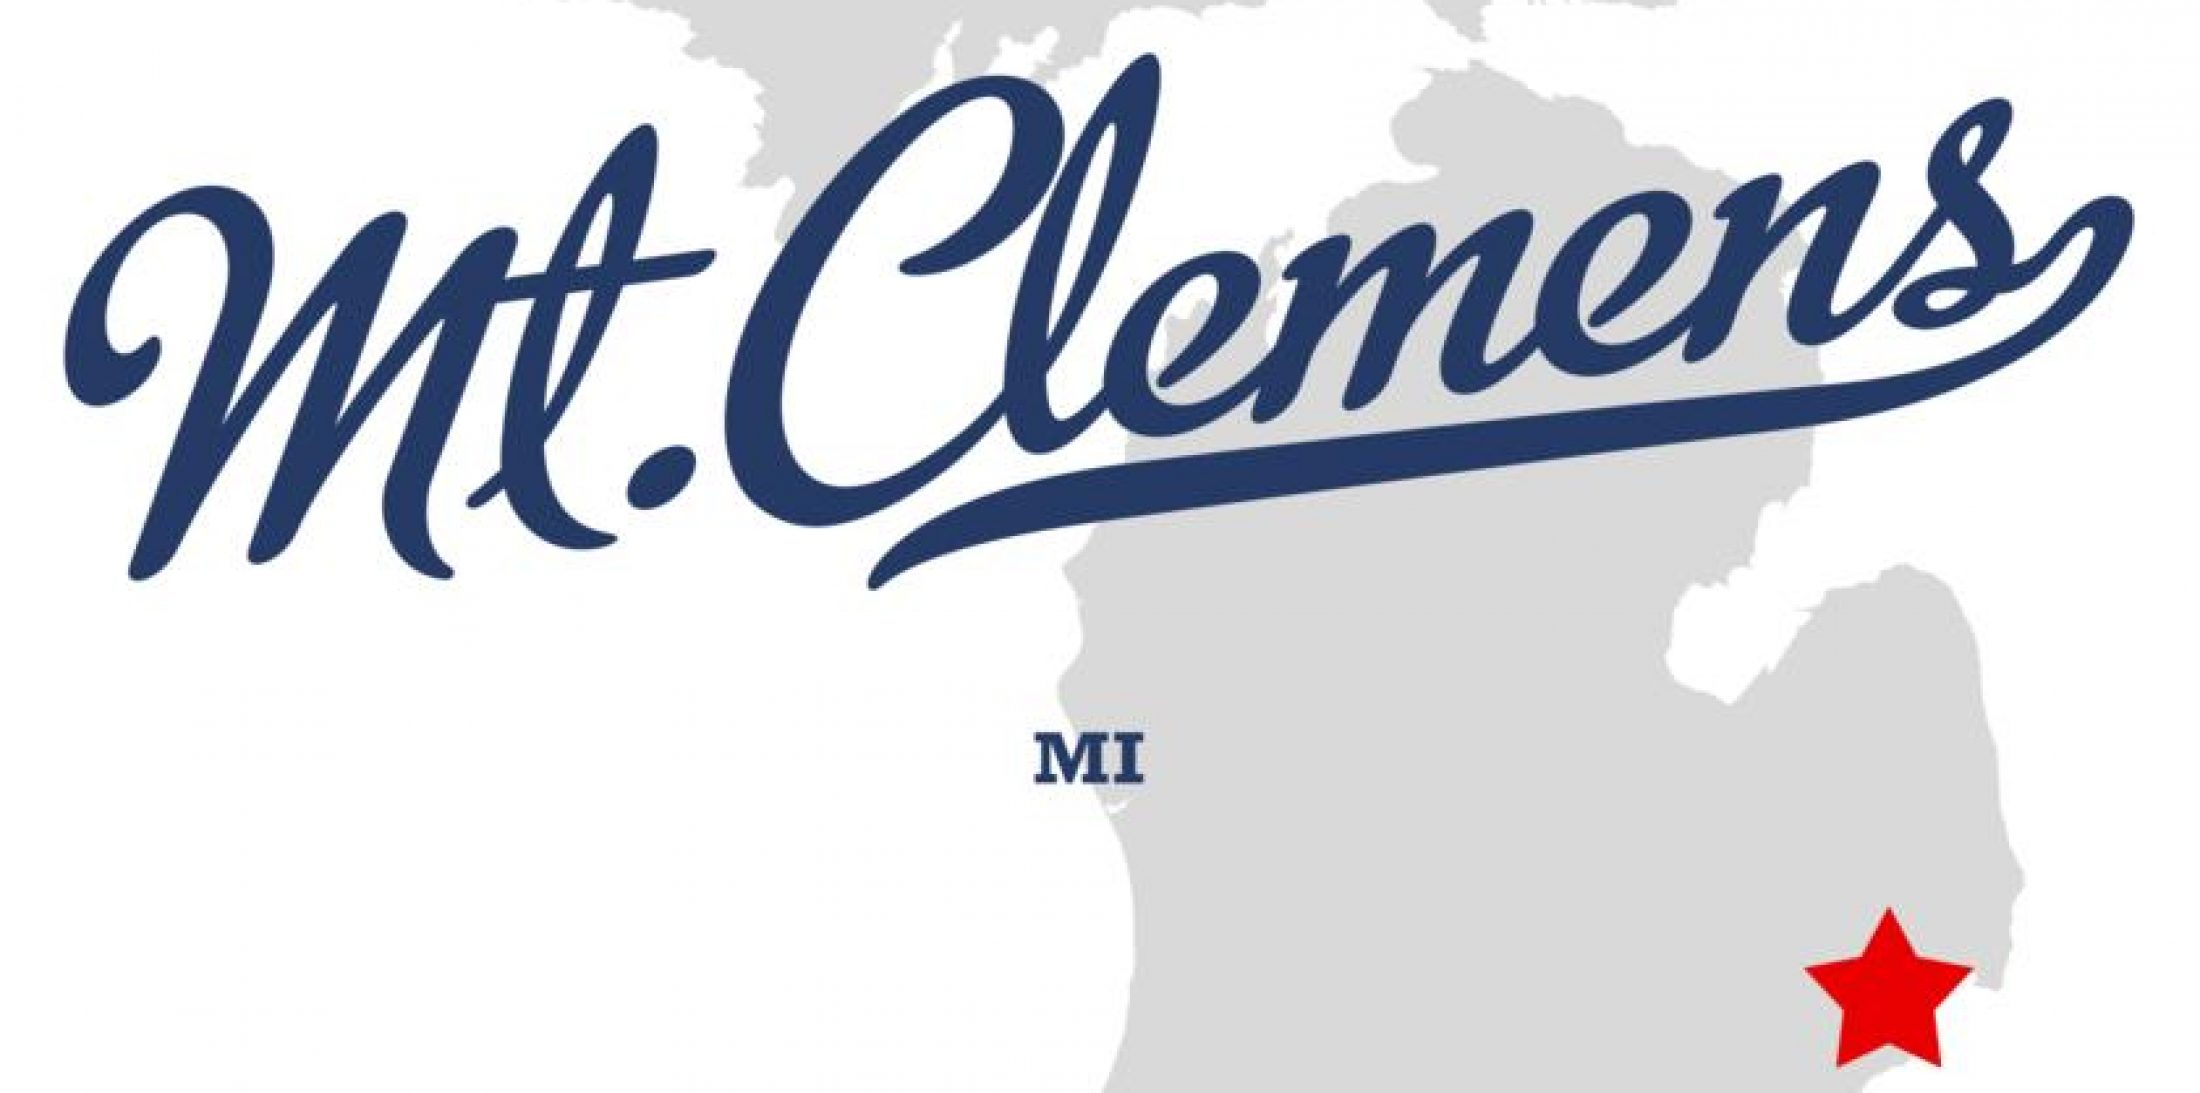 Prominent People and Historical Places of Mount Clemens